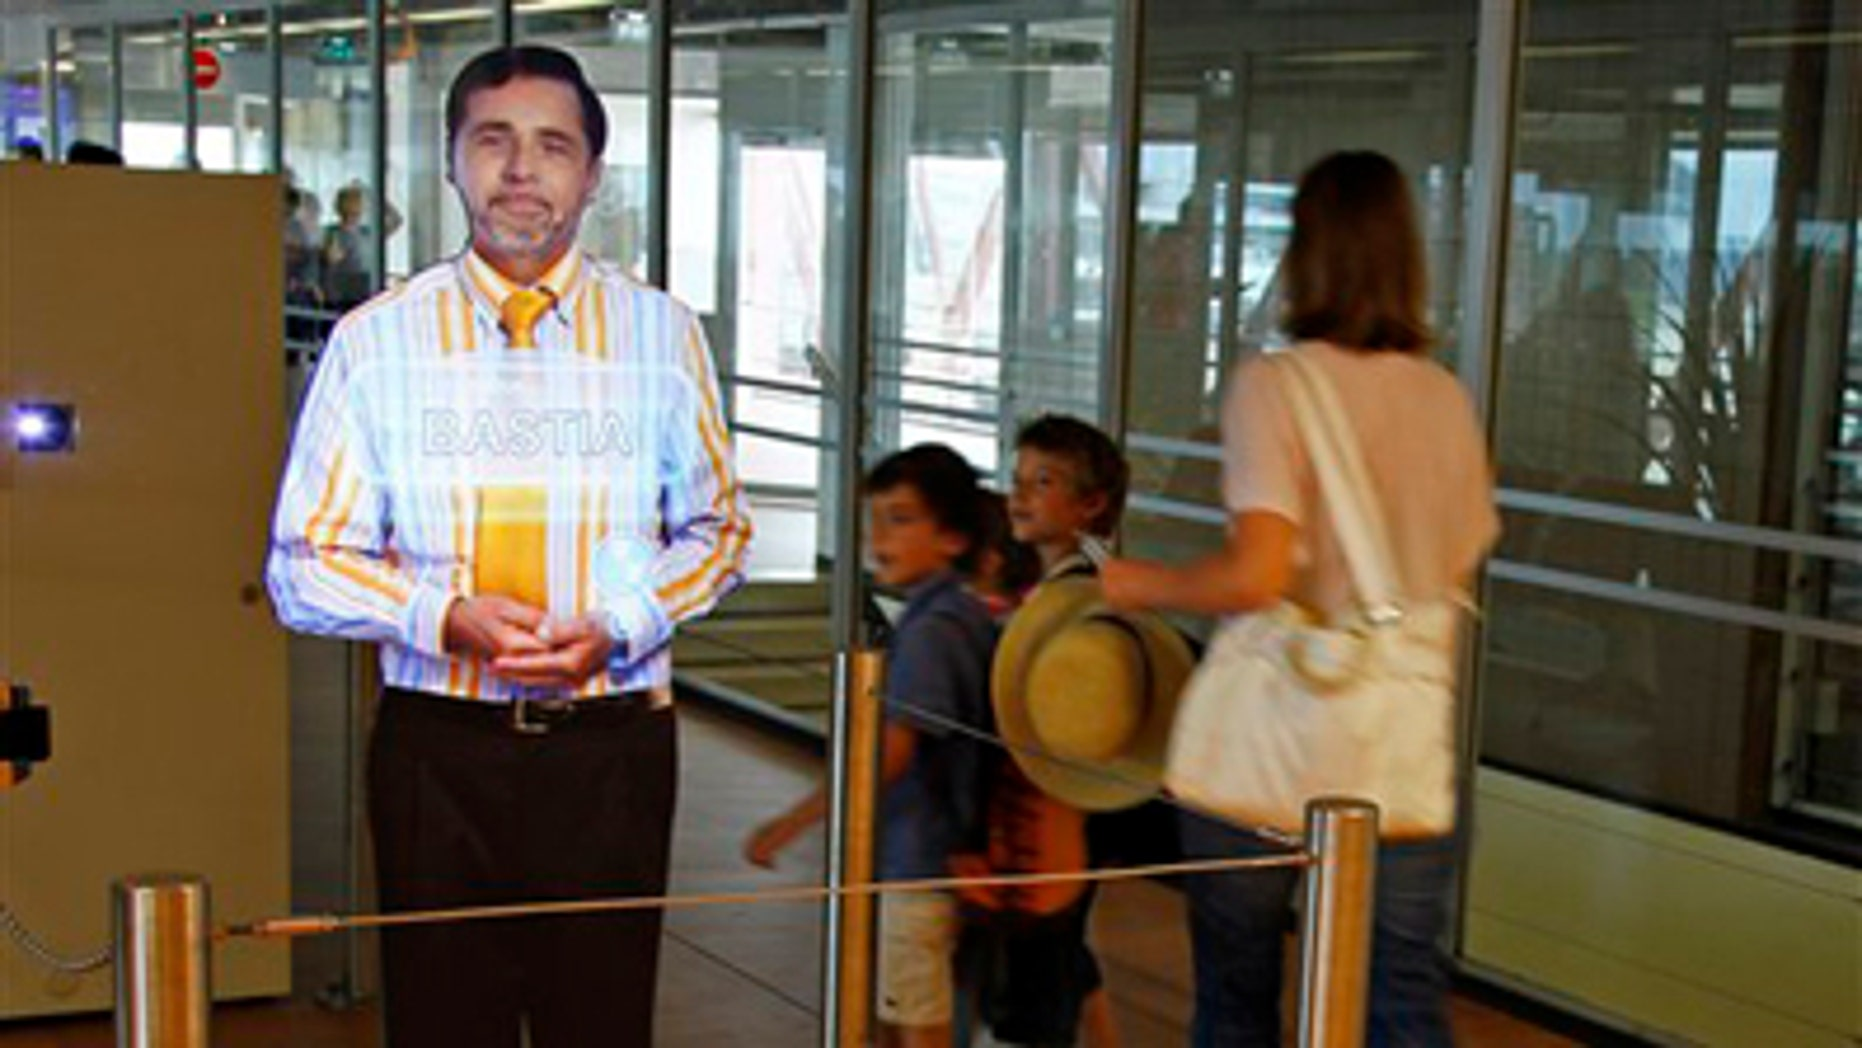 """Aug. 18: An airport experimenting """"virtual"""" boarding agent, left, is displayed at Paris' Orly airport, on the southern outskirts of Paris. The pilot project began last month, and has so far been met with a mix of amusement and surprise by travellers, who frequently try to touch and speak with the strikingly life-like video images that greet them and direct them to their boarding gate."""